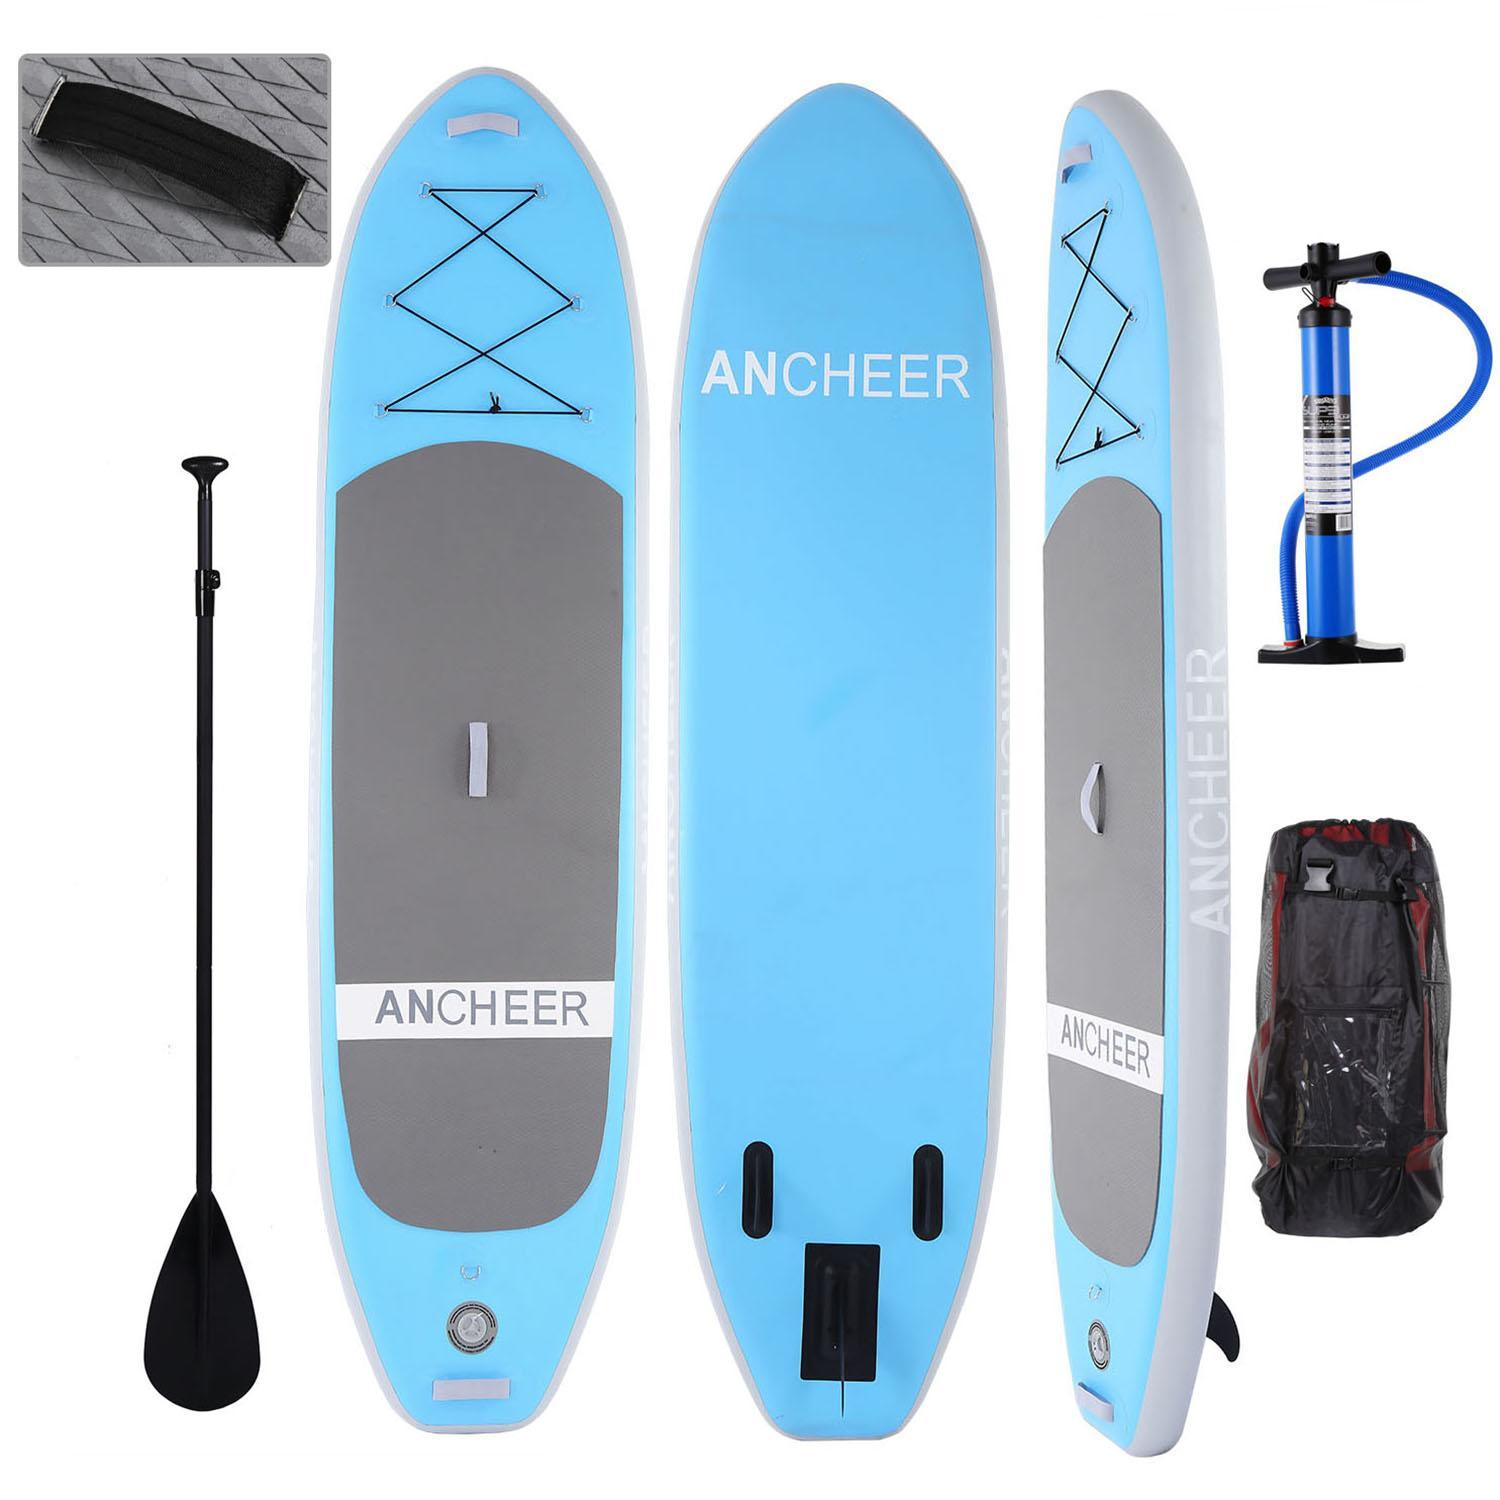 The Newest 10ft Inflatable Stand Up Paddle Board iSUP with Adjustable Paddle Backpack Hand Pump HFON by